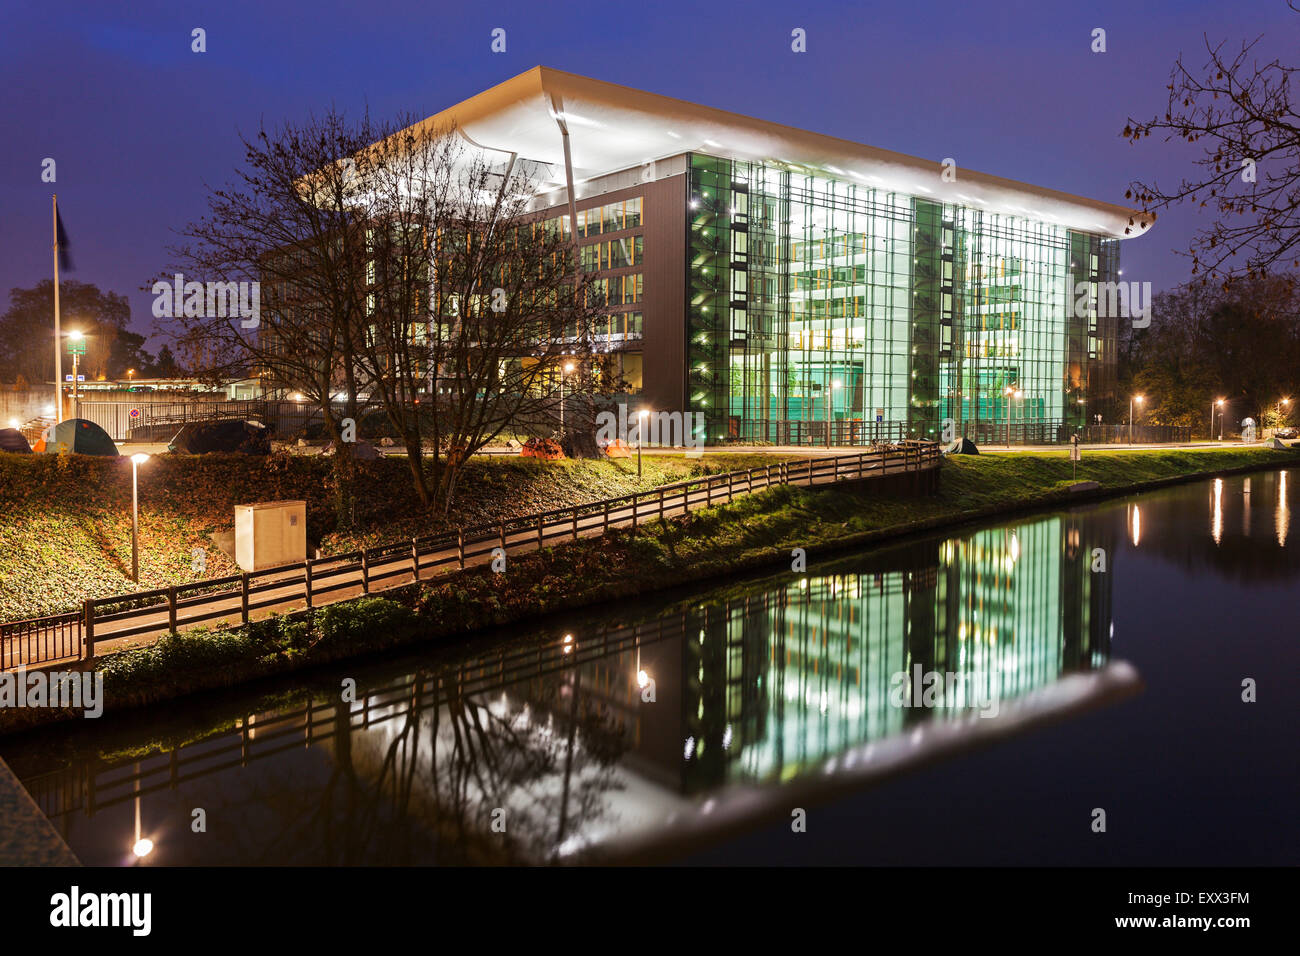 Building of Council of Europe - Stock Image